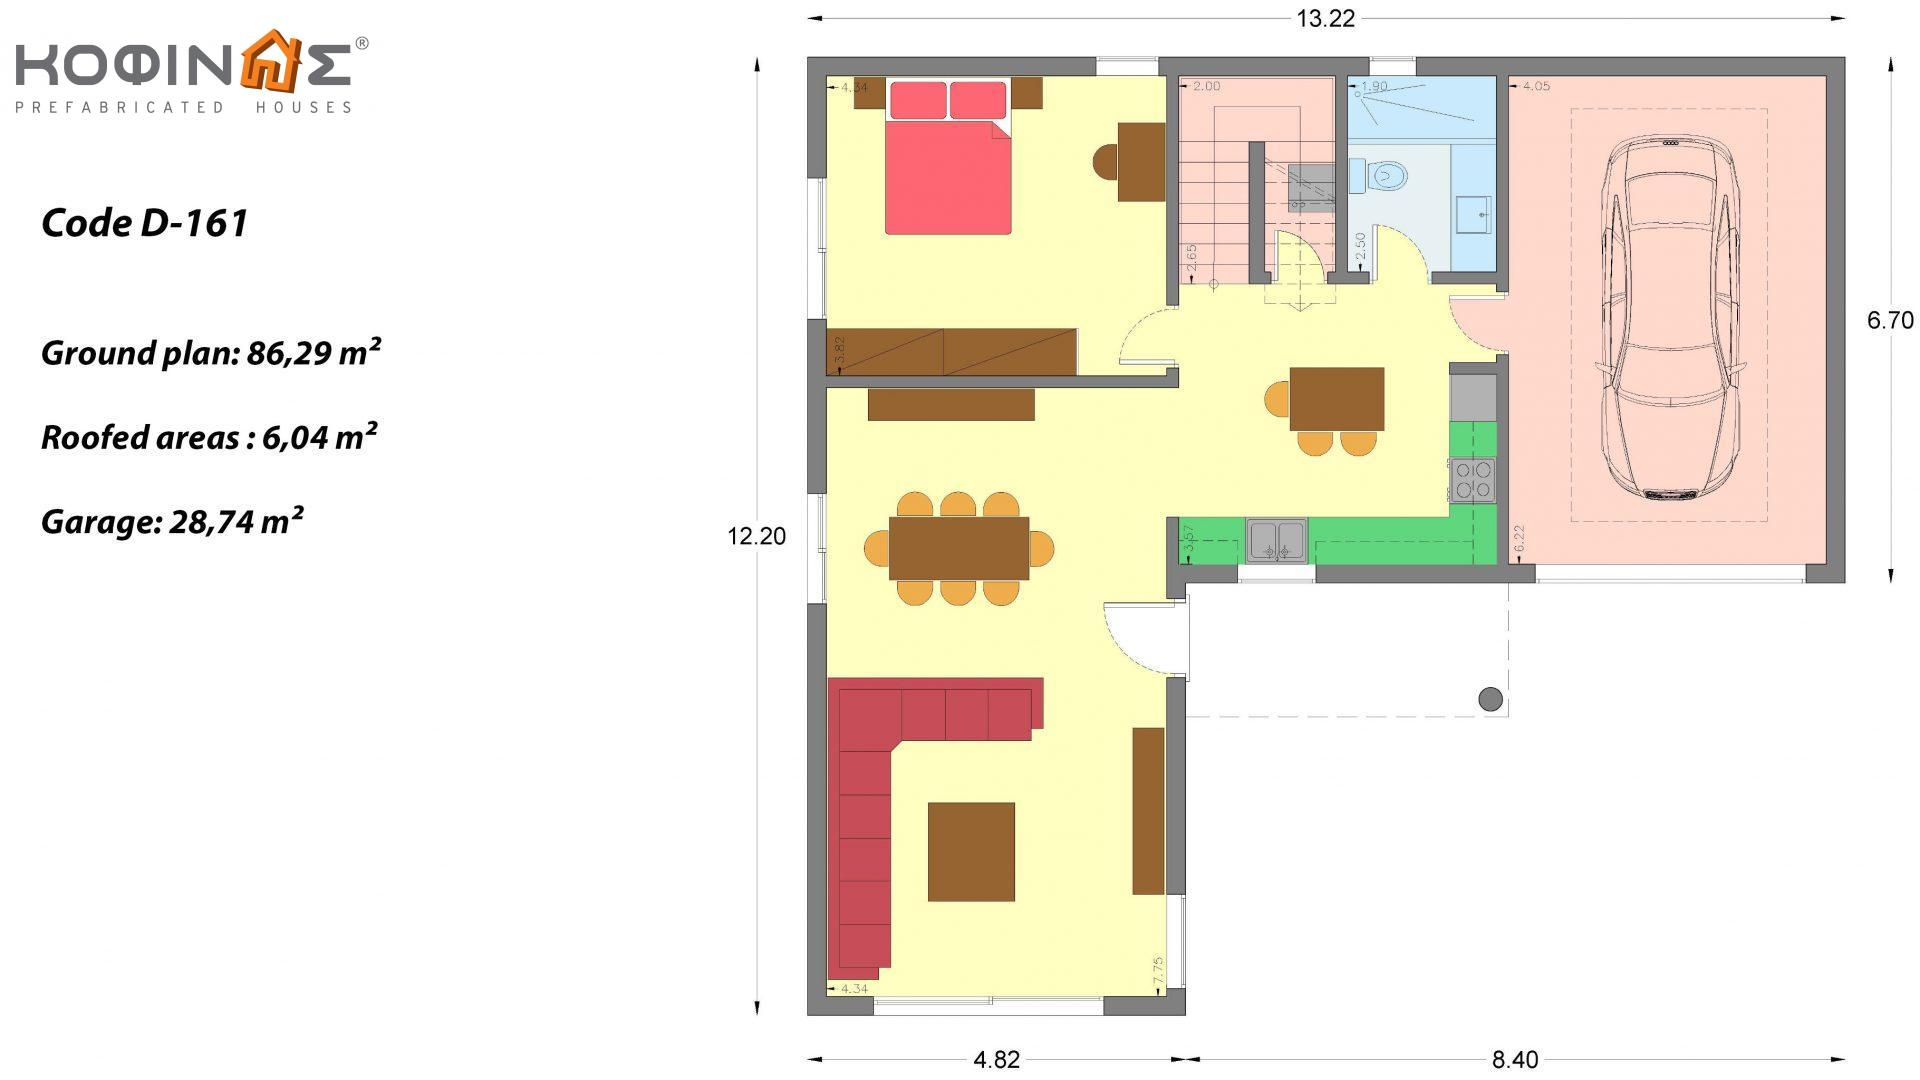 2-story house D-161, with a total area of 161.27 sq.m., +Garage 28.74 m²(=190.01 m²),roofed areas 6.04 m²,balconies 47.05 m²